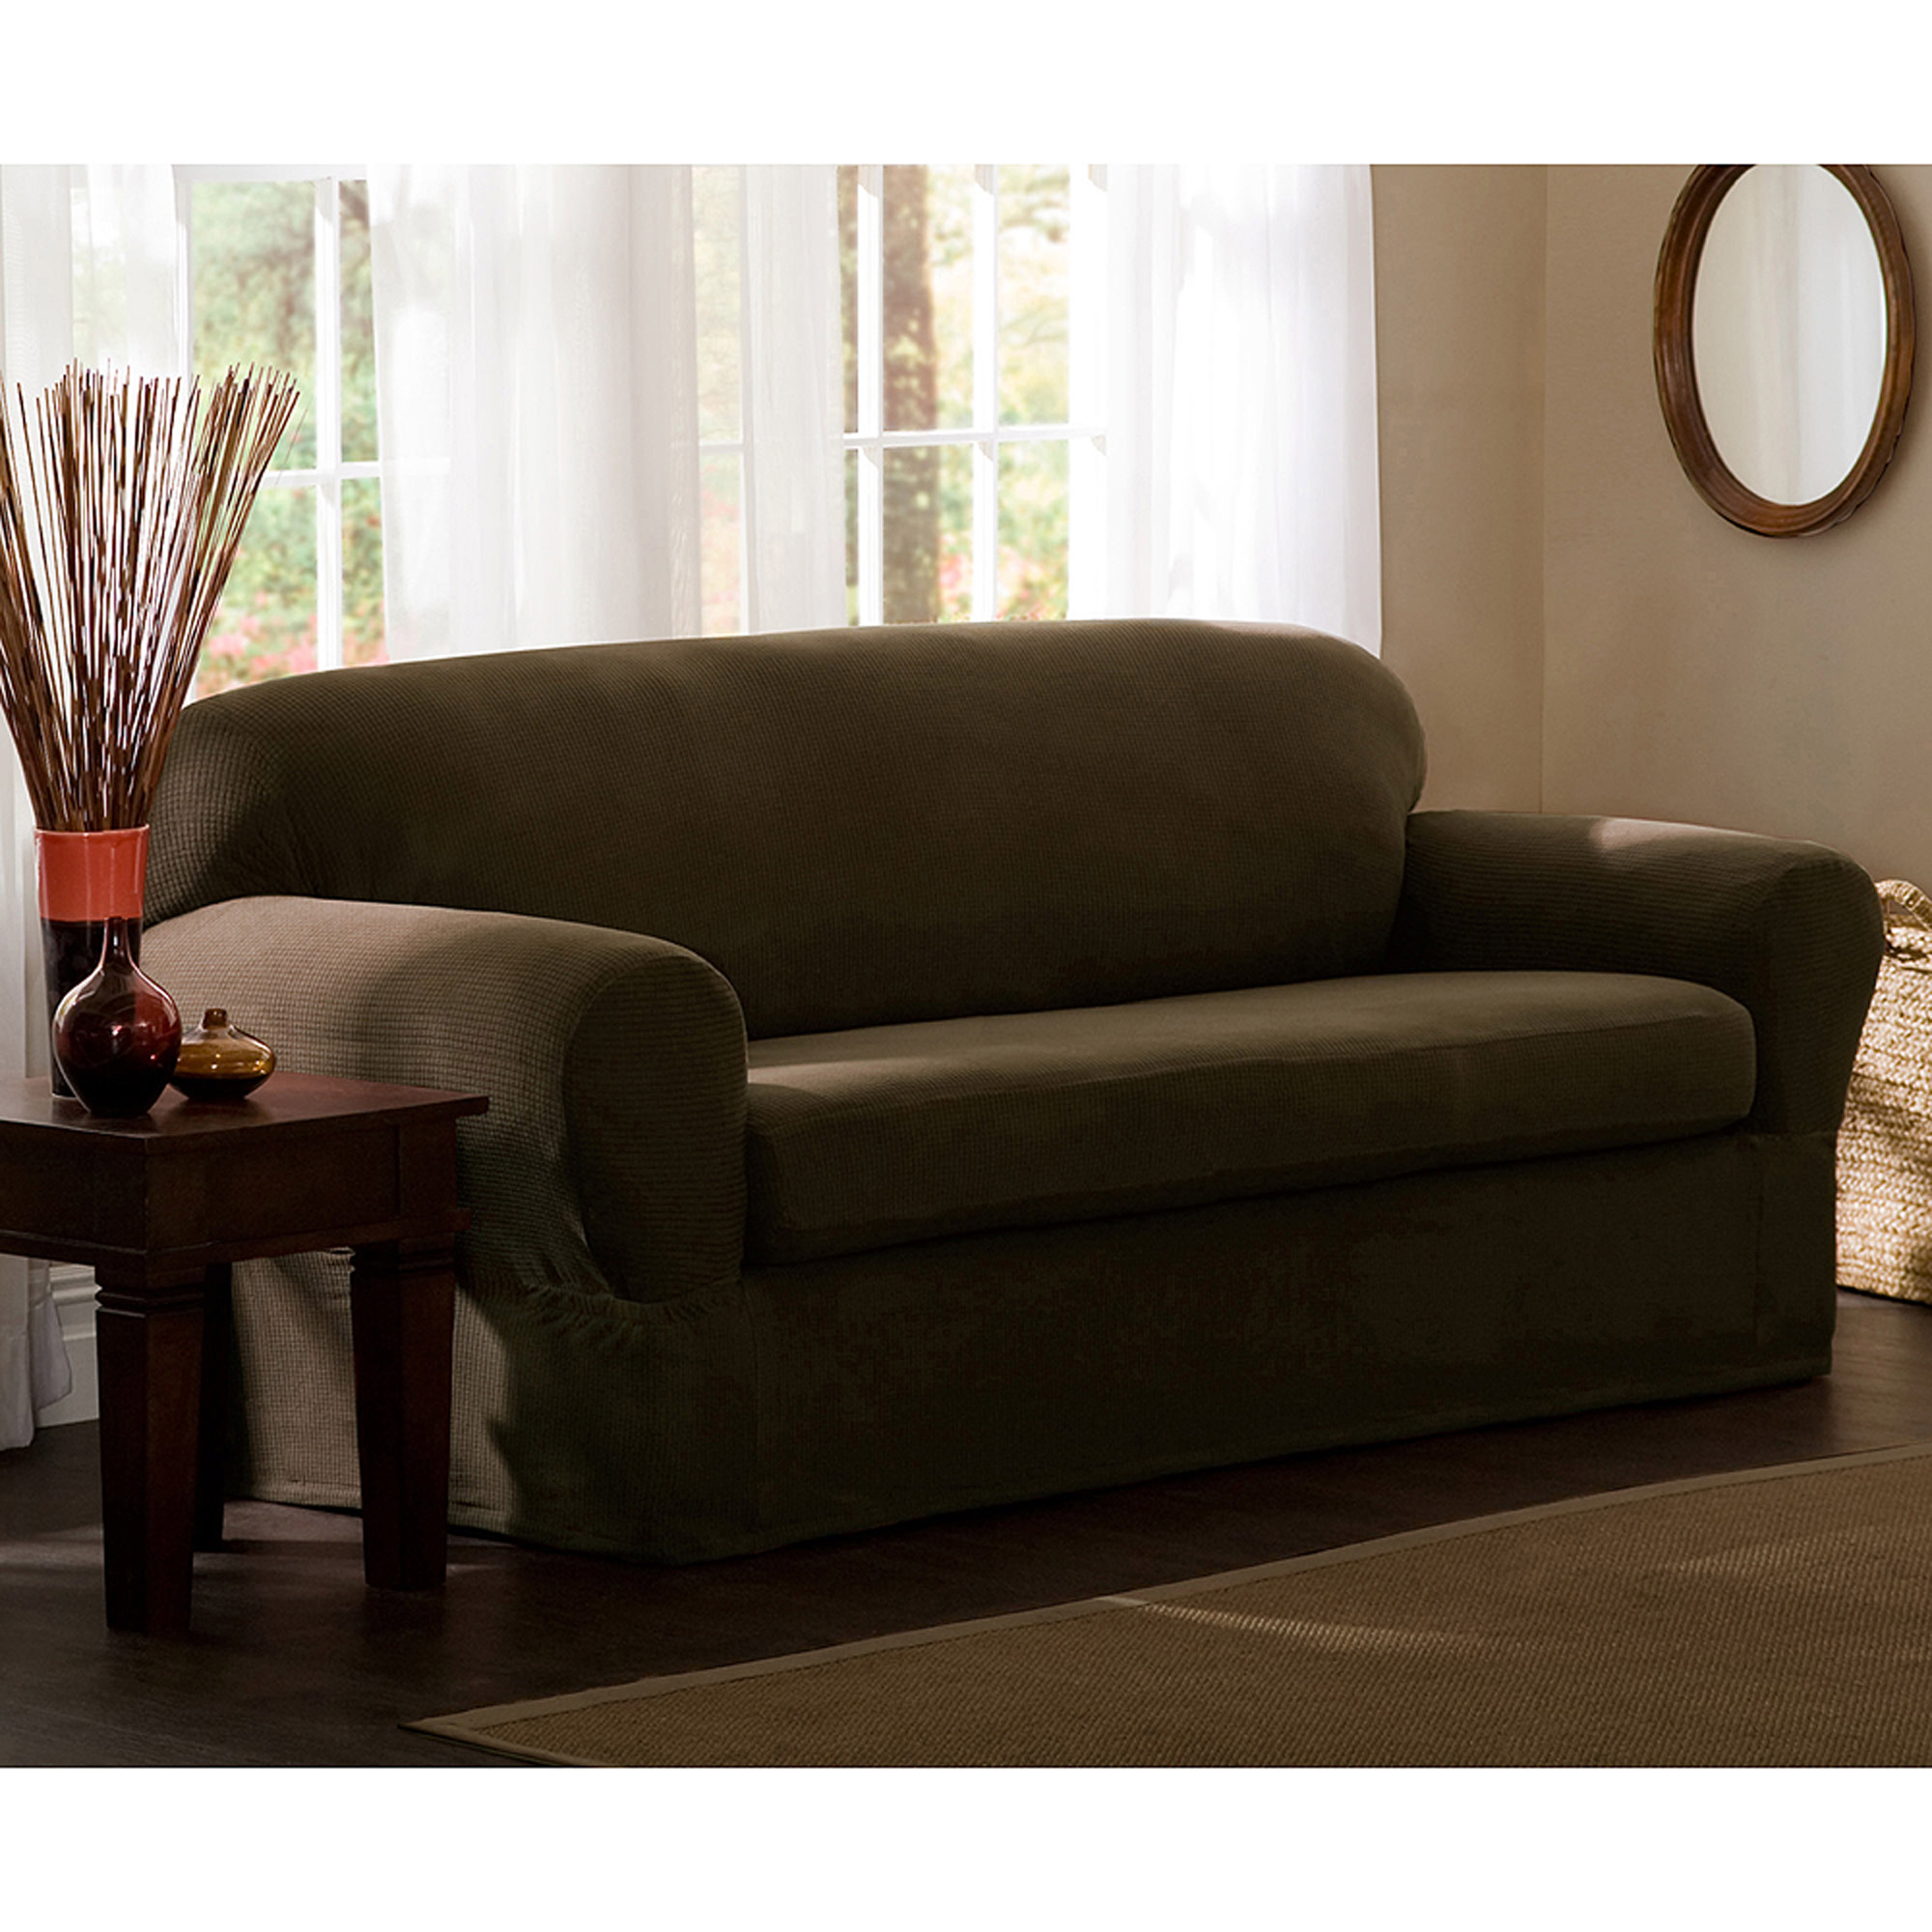 Maytex Stretch Reeves 2 Piece Loveseat Furniture Cover Slipcover